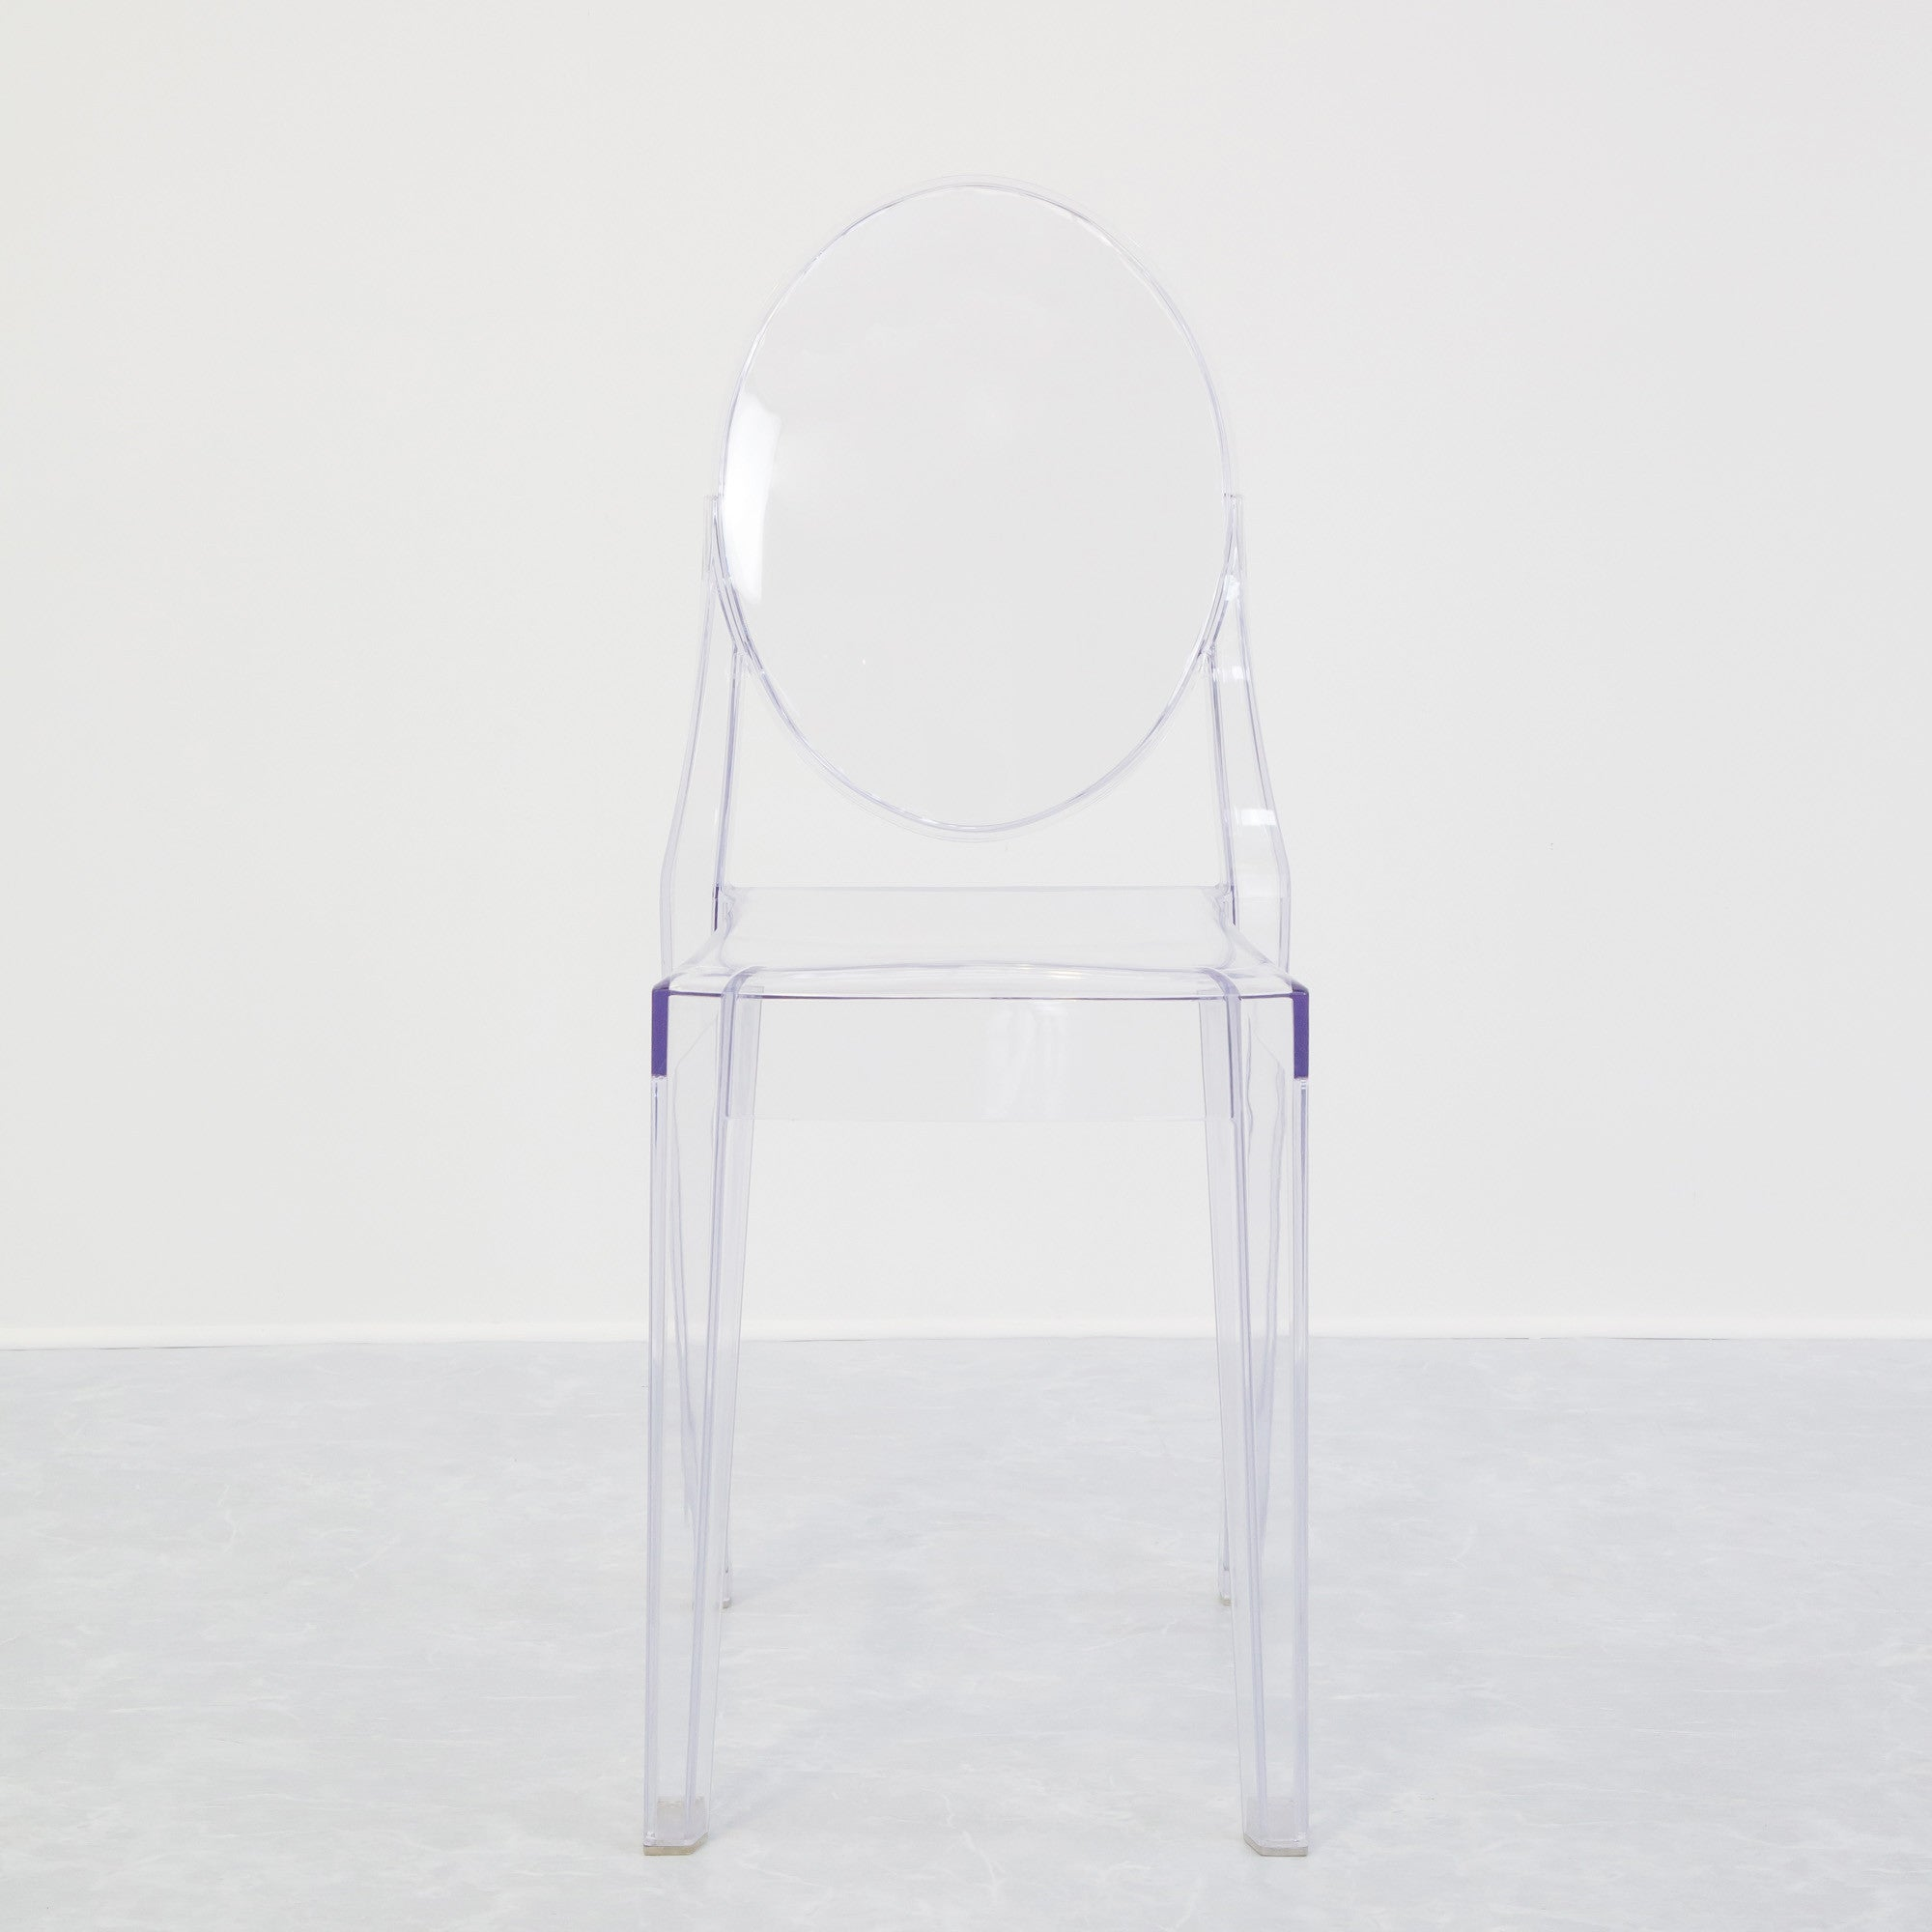 monica starck by product from b architonic multipurpose kartell marie en chairs louisghost la ghost chair